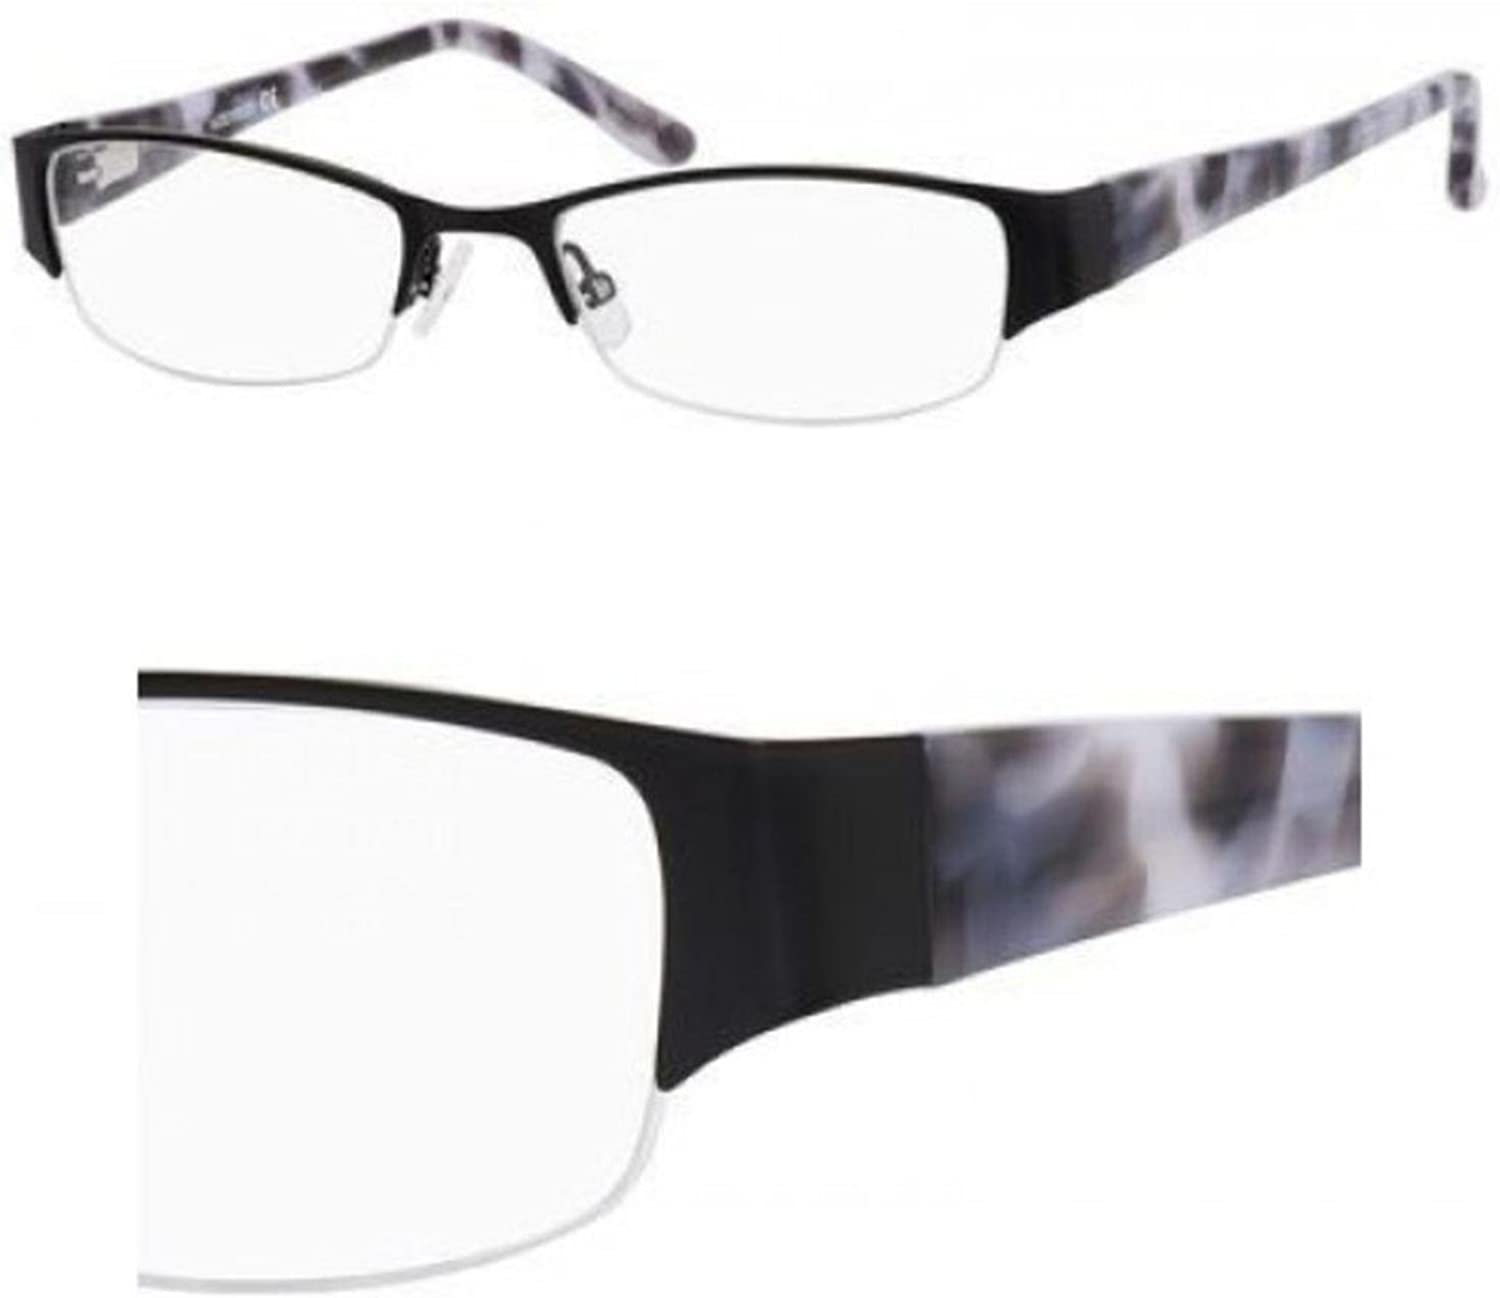 Adensco Carey 0003 Black Eyeglasses